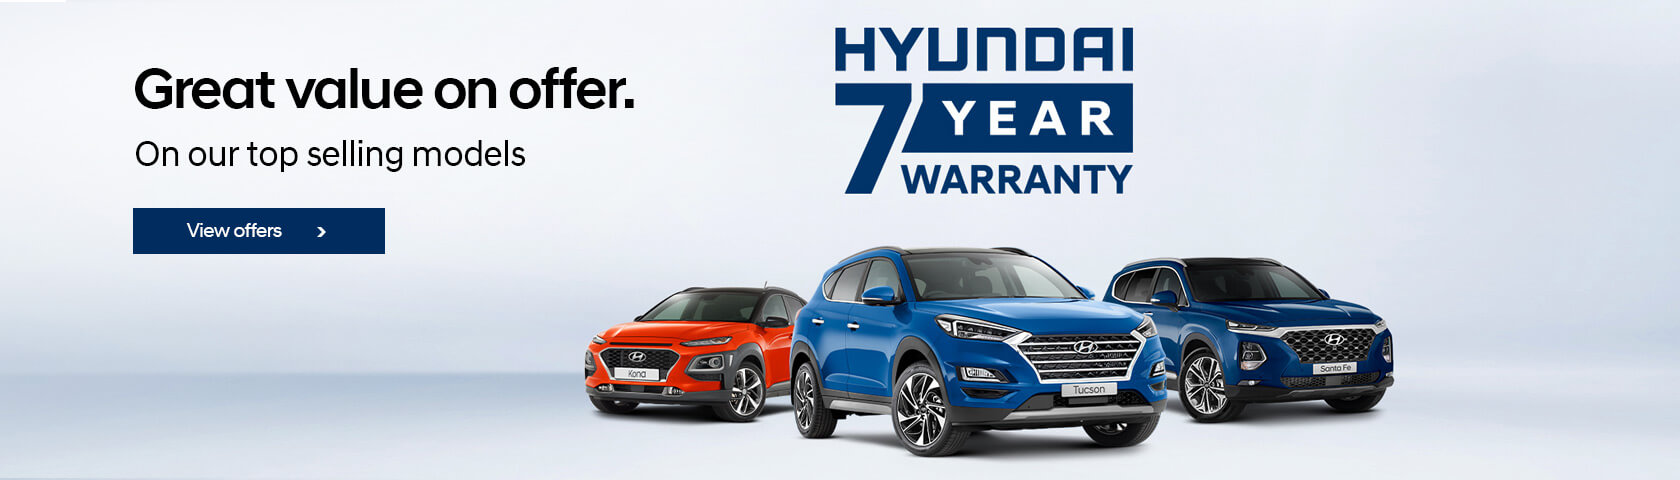 Hyundai Dealer Latest Offers